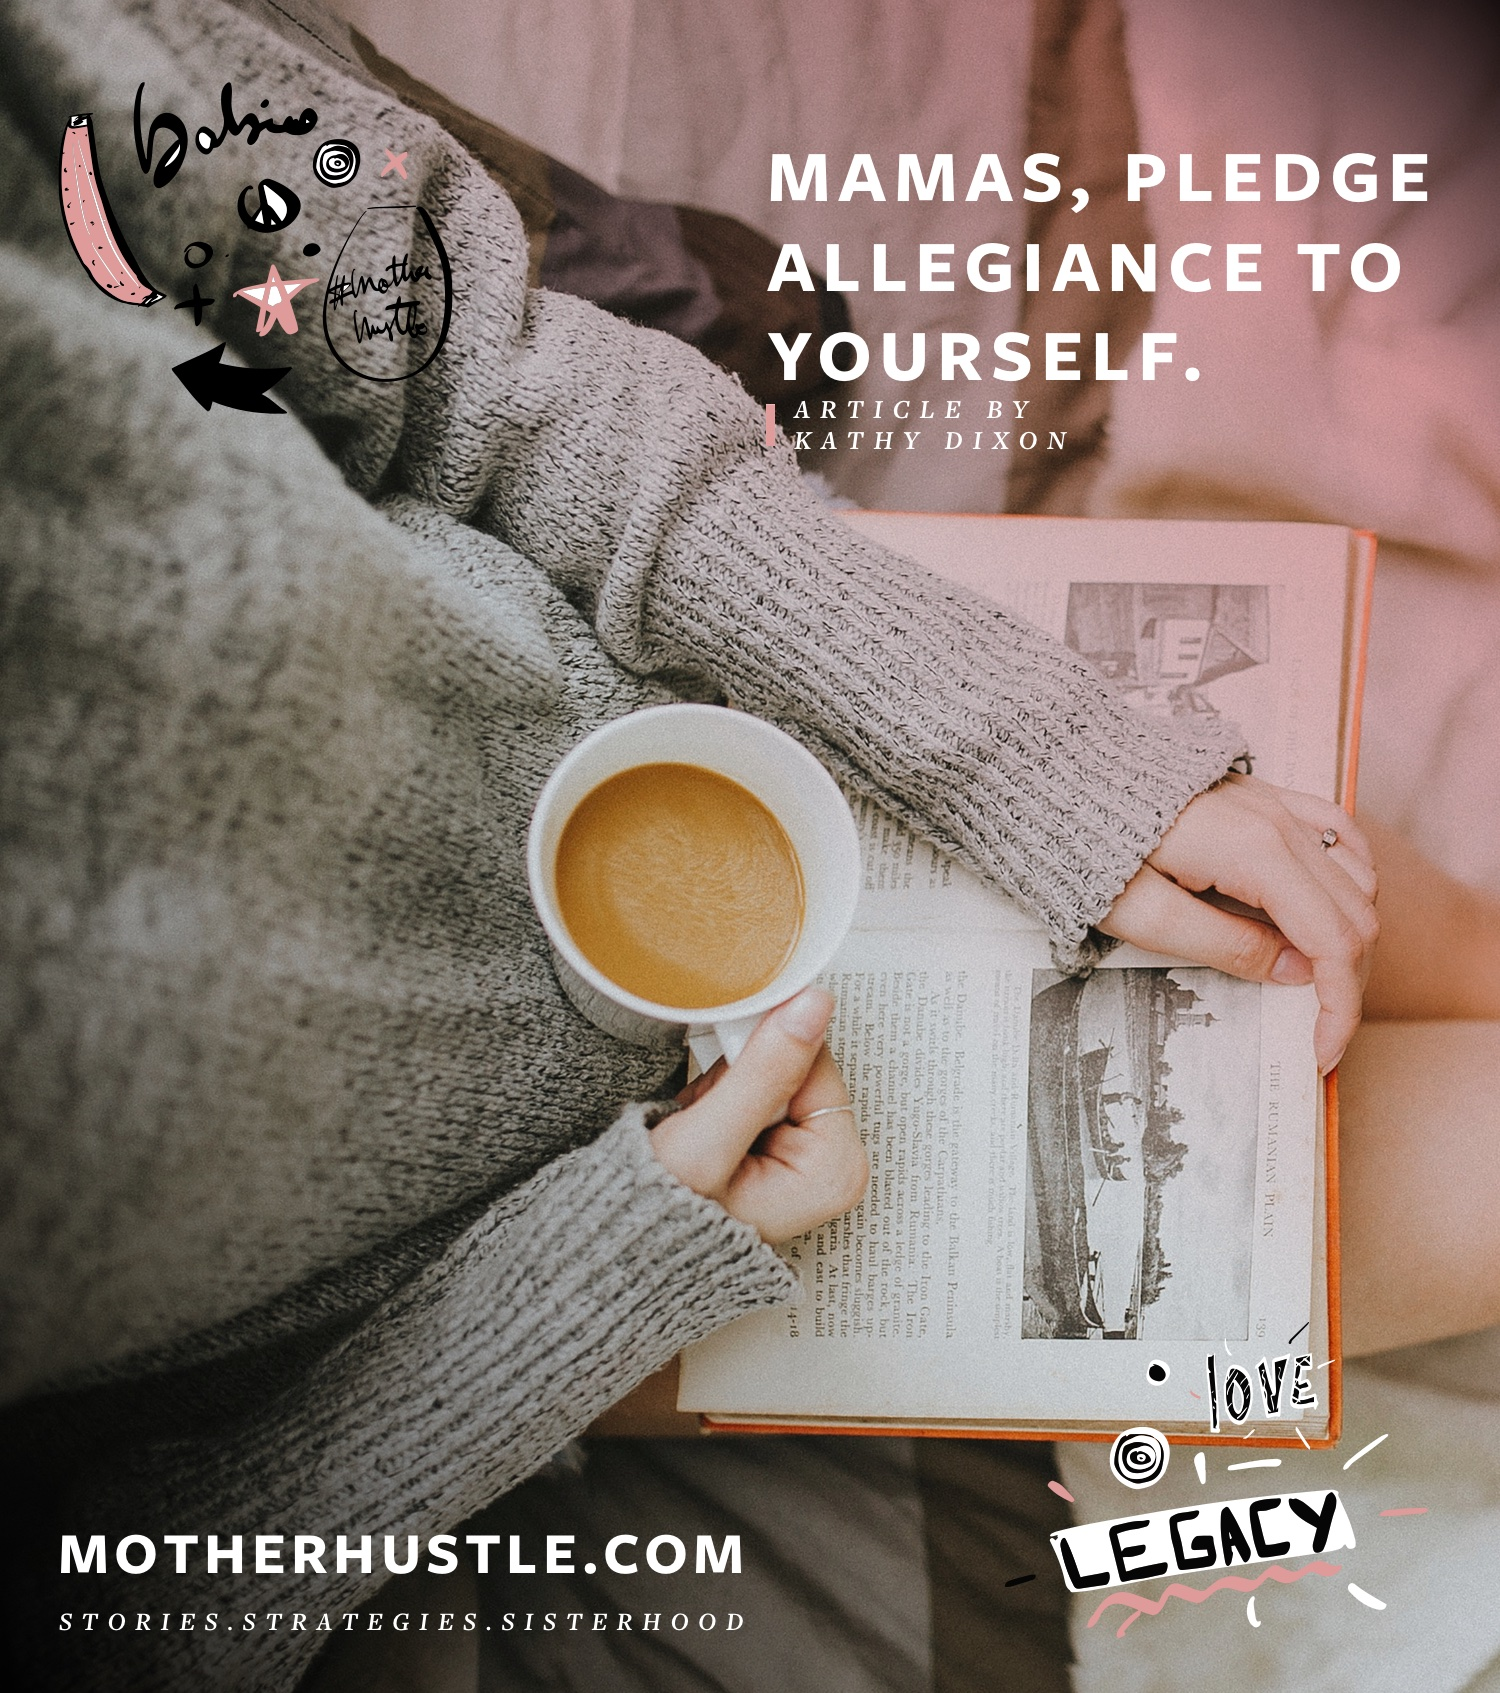 Mamas, Pledge Allegiance to Yourself - by Kathy Dixon for MotherHustle